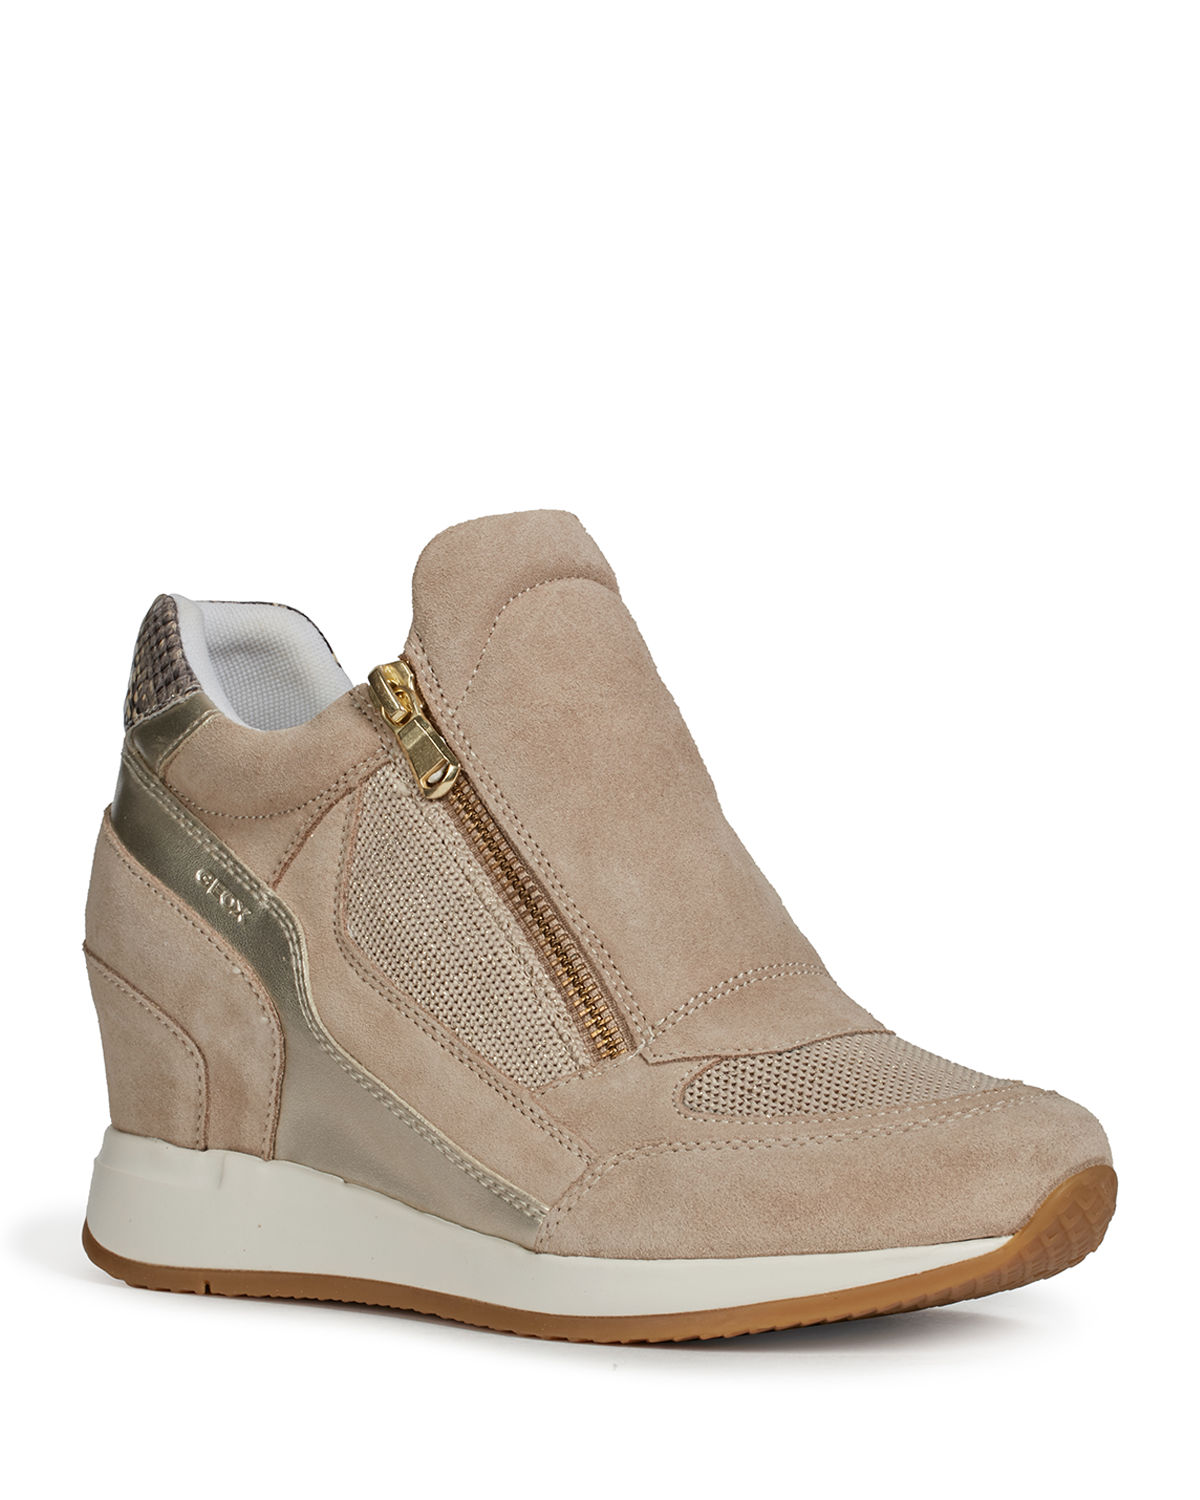 Nydame Mix-Media Wedge Sneakers